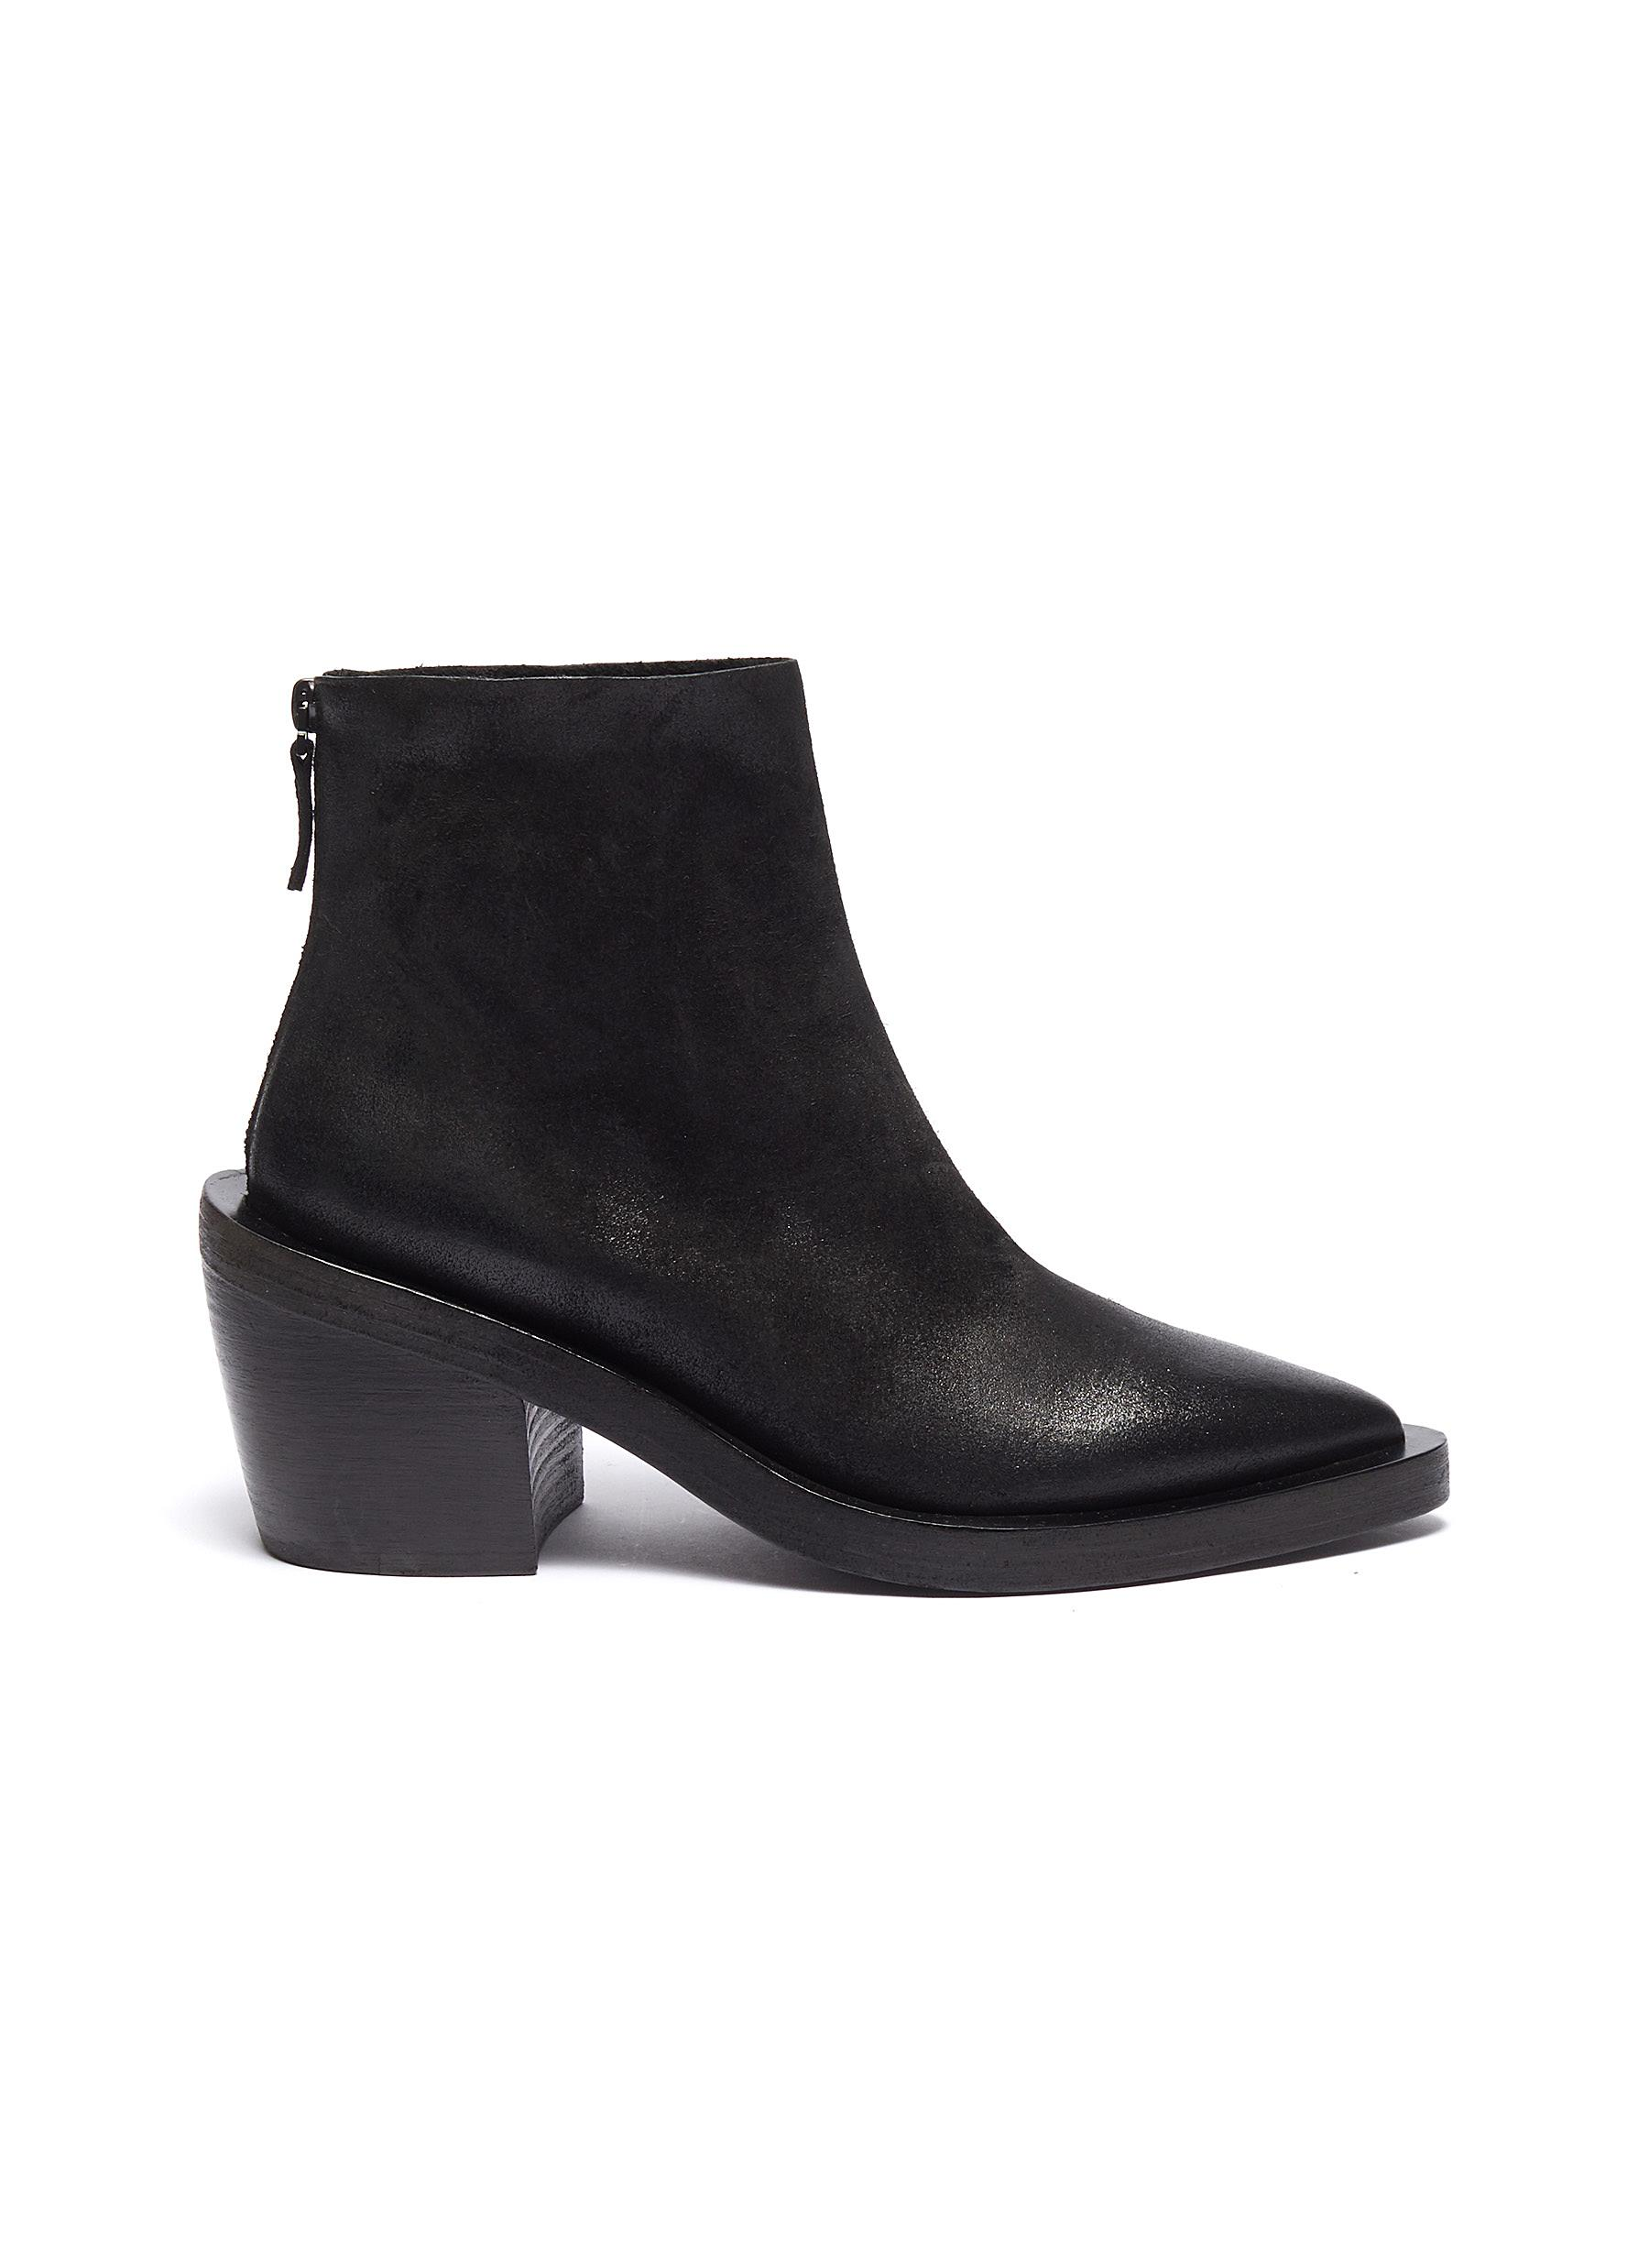 Coneros distressed leather ankle boots by Marsèll